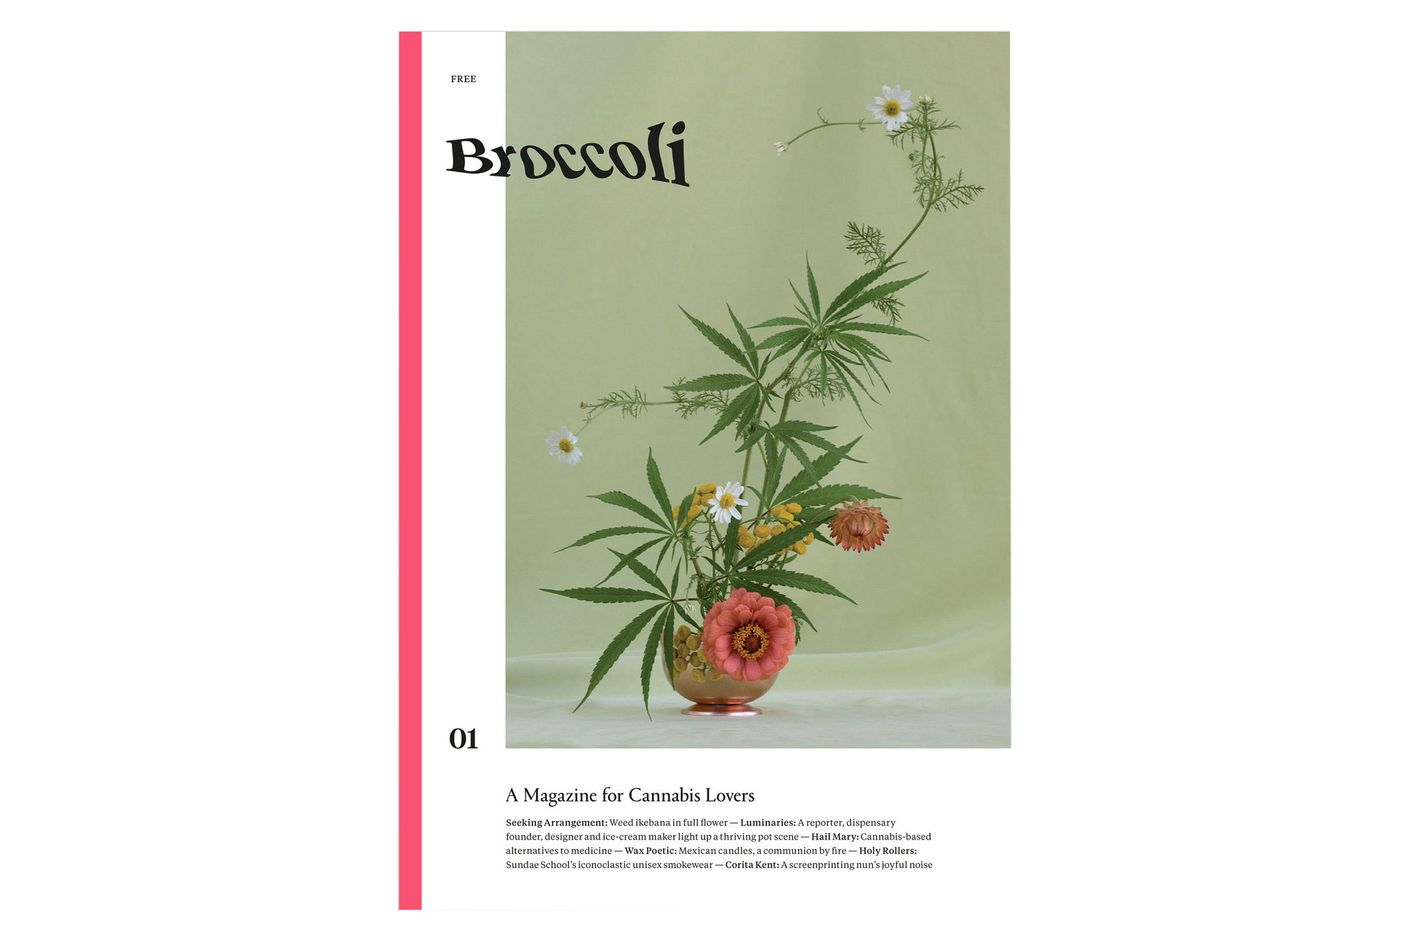 Broccoli Magazine Issue 01